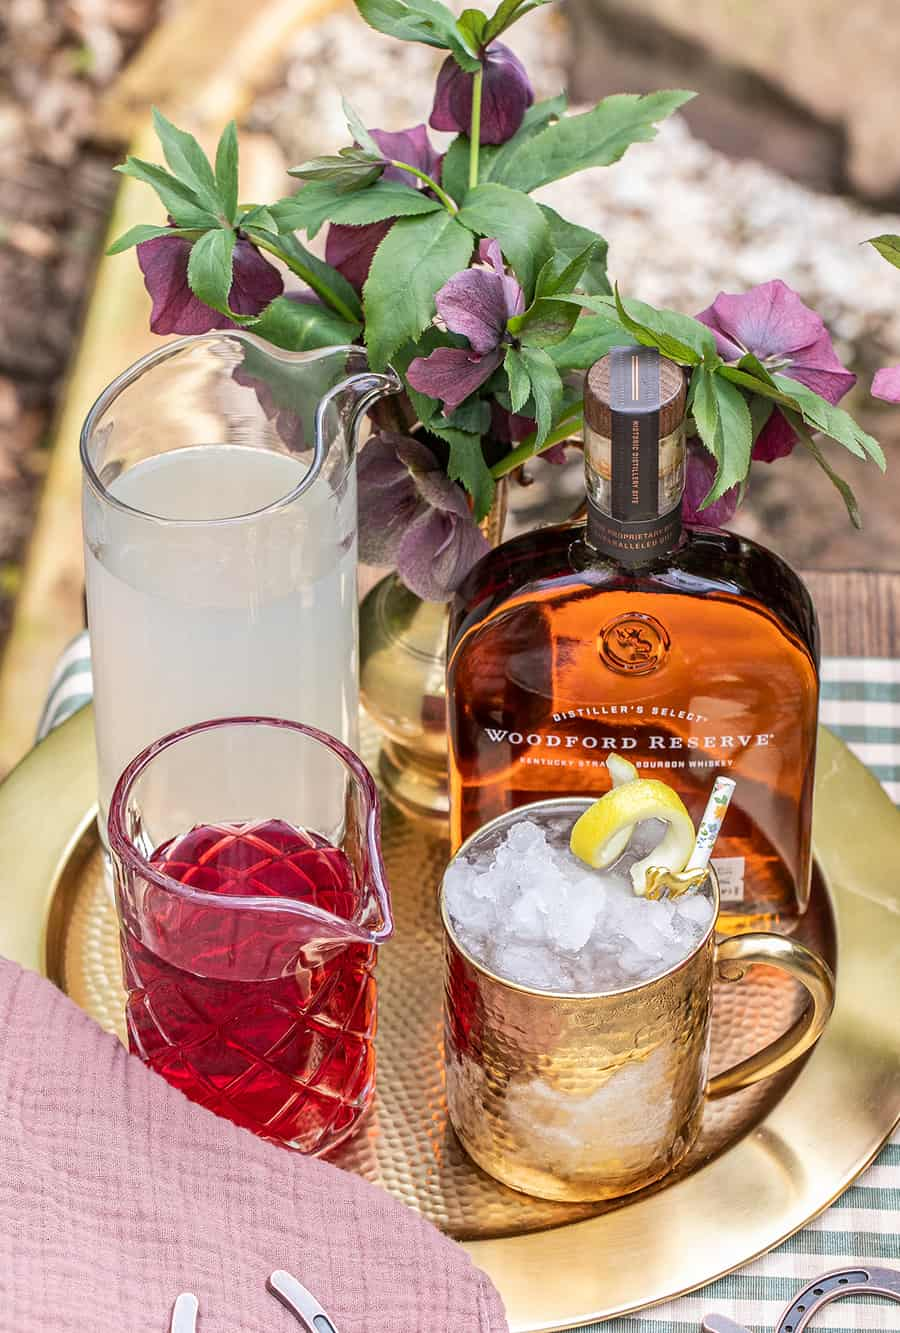 Cranberry juice, lemonade, Woodford Reserve on a gold tray.